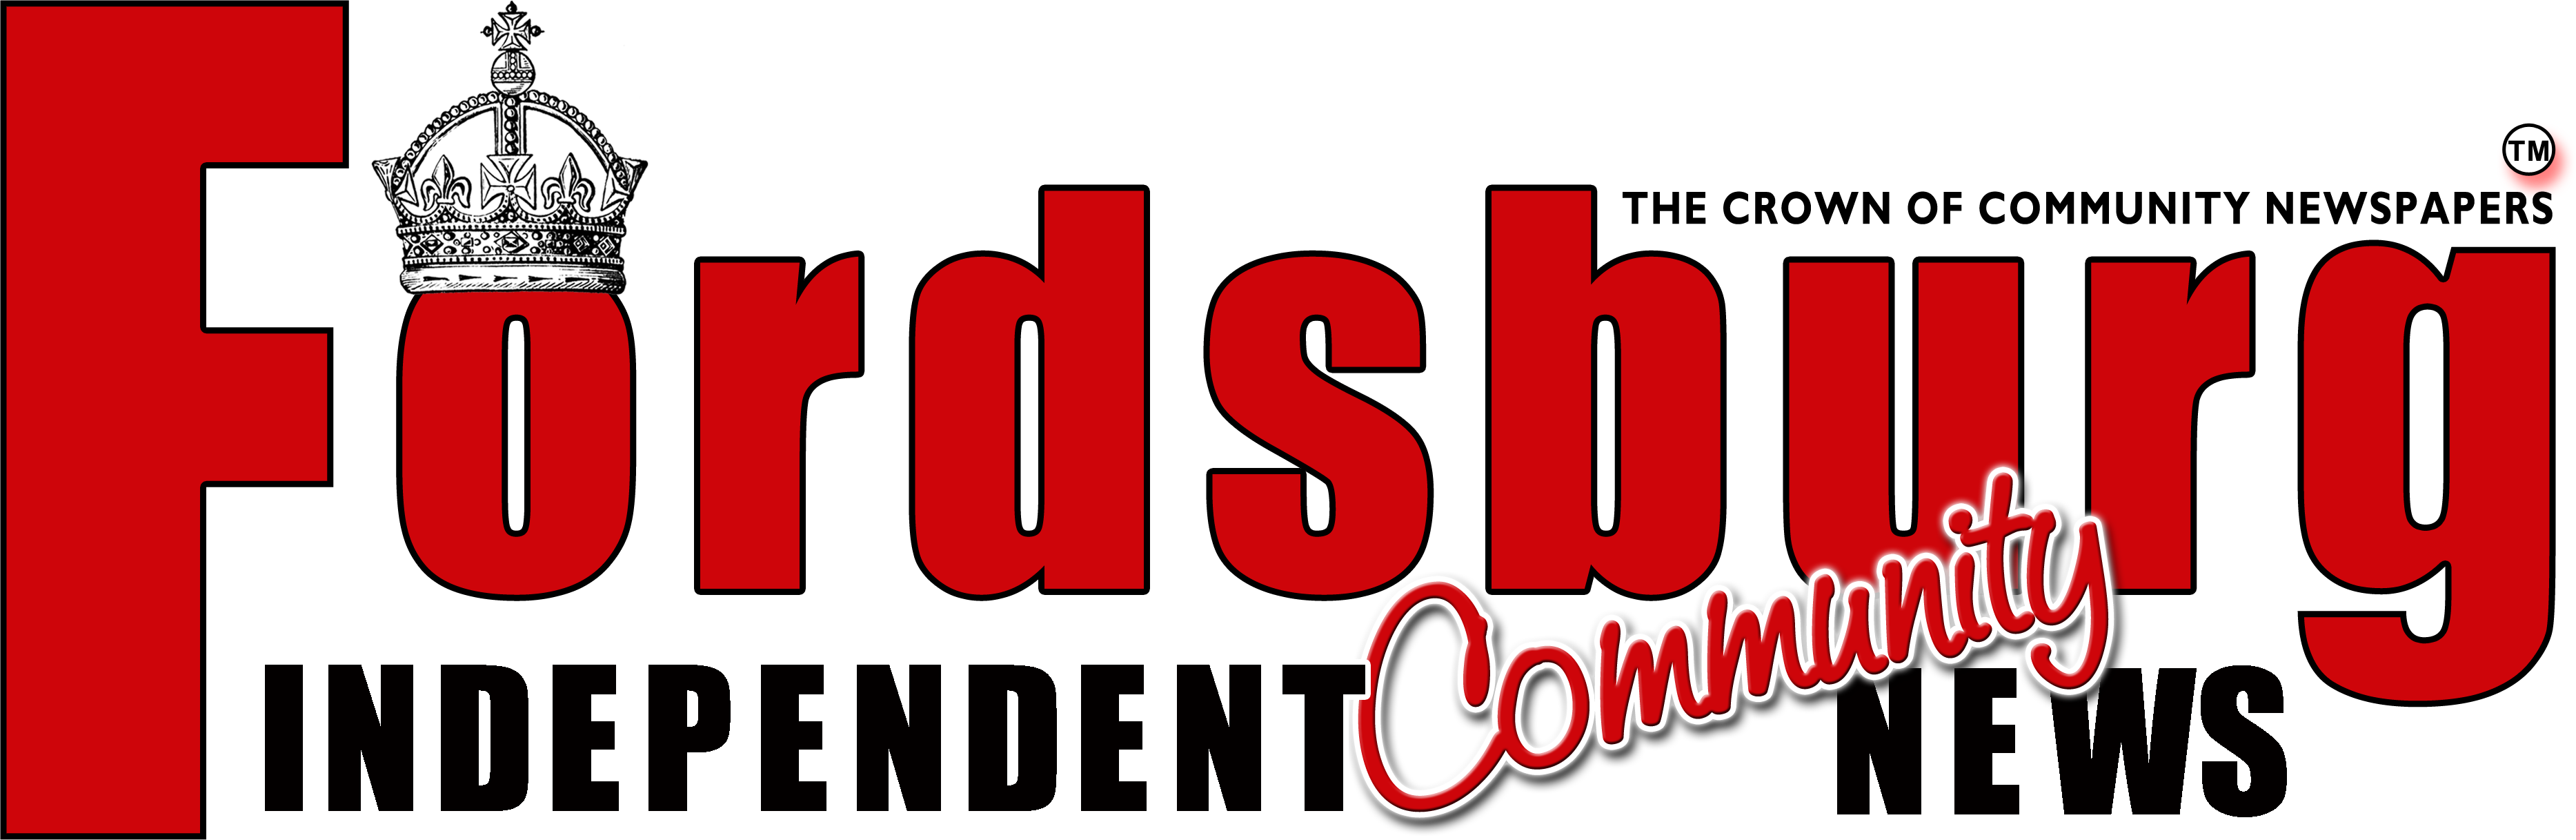 The Fordsburg Independent Community Newspaper